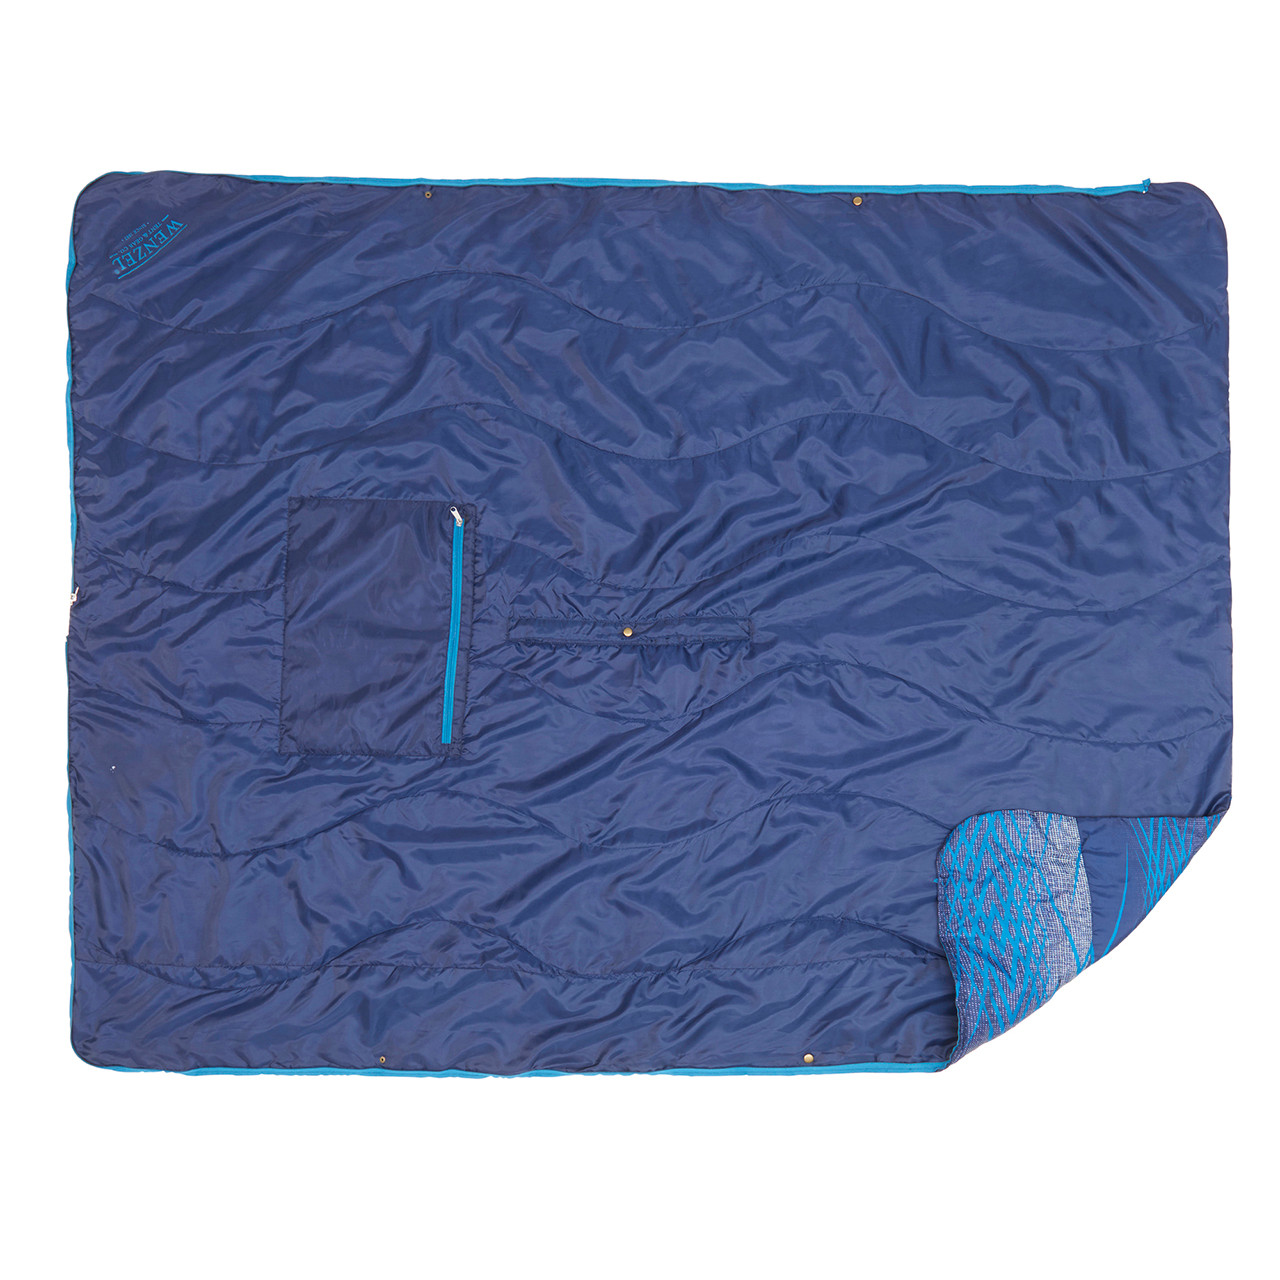 Bottom view of the Wenzel Everett All-In-One Poncho, blue, with one corner slightly folded over showing the multi-color blue topside